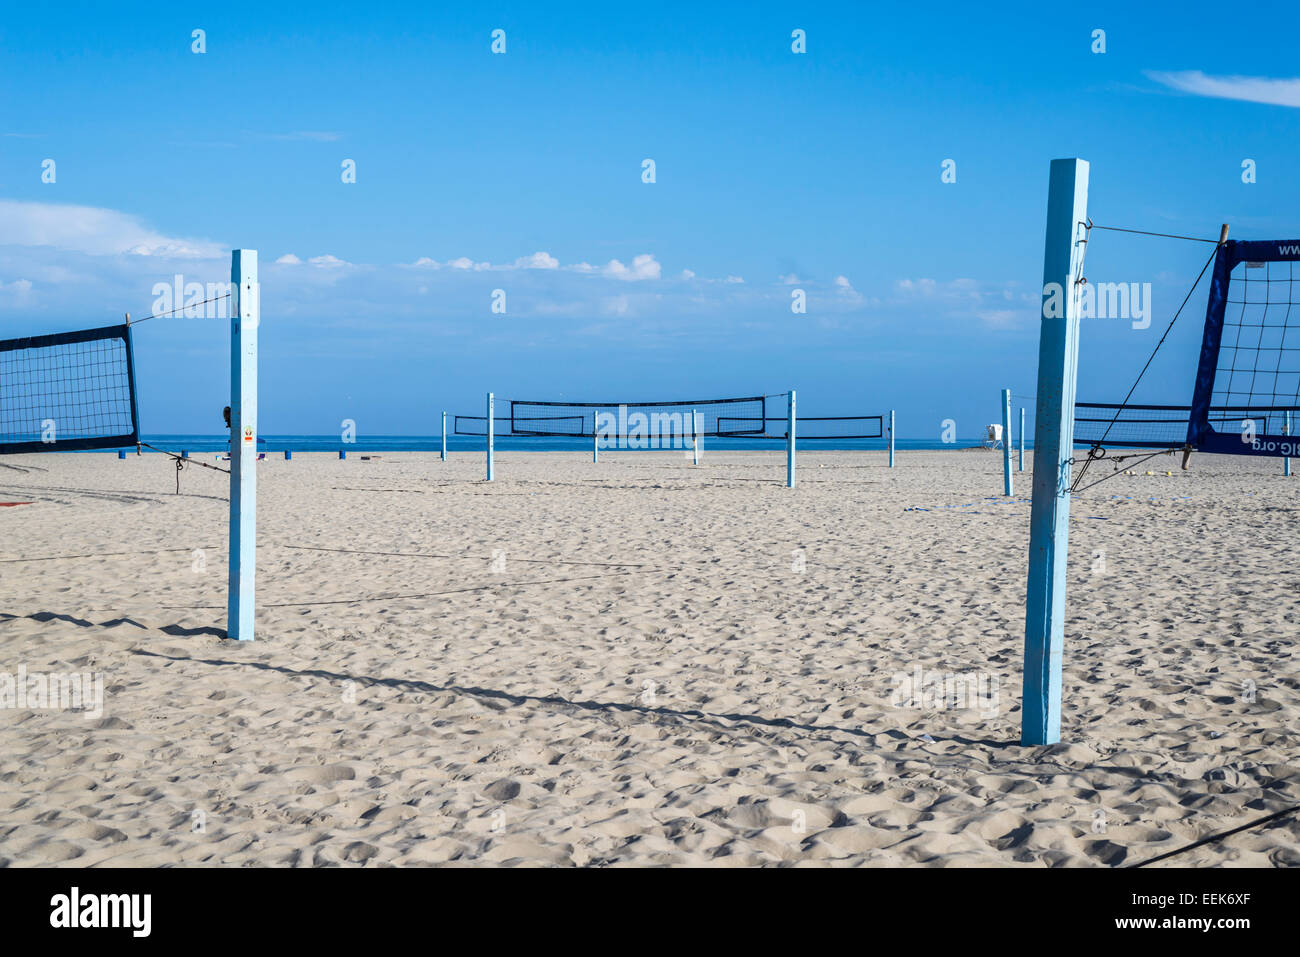 Beach Volleyball Courts High Resolution Stock Photography And Images Alamy